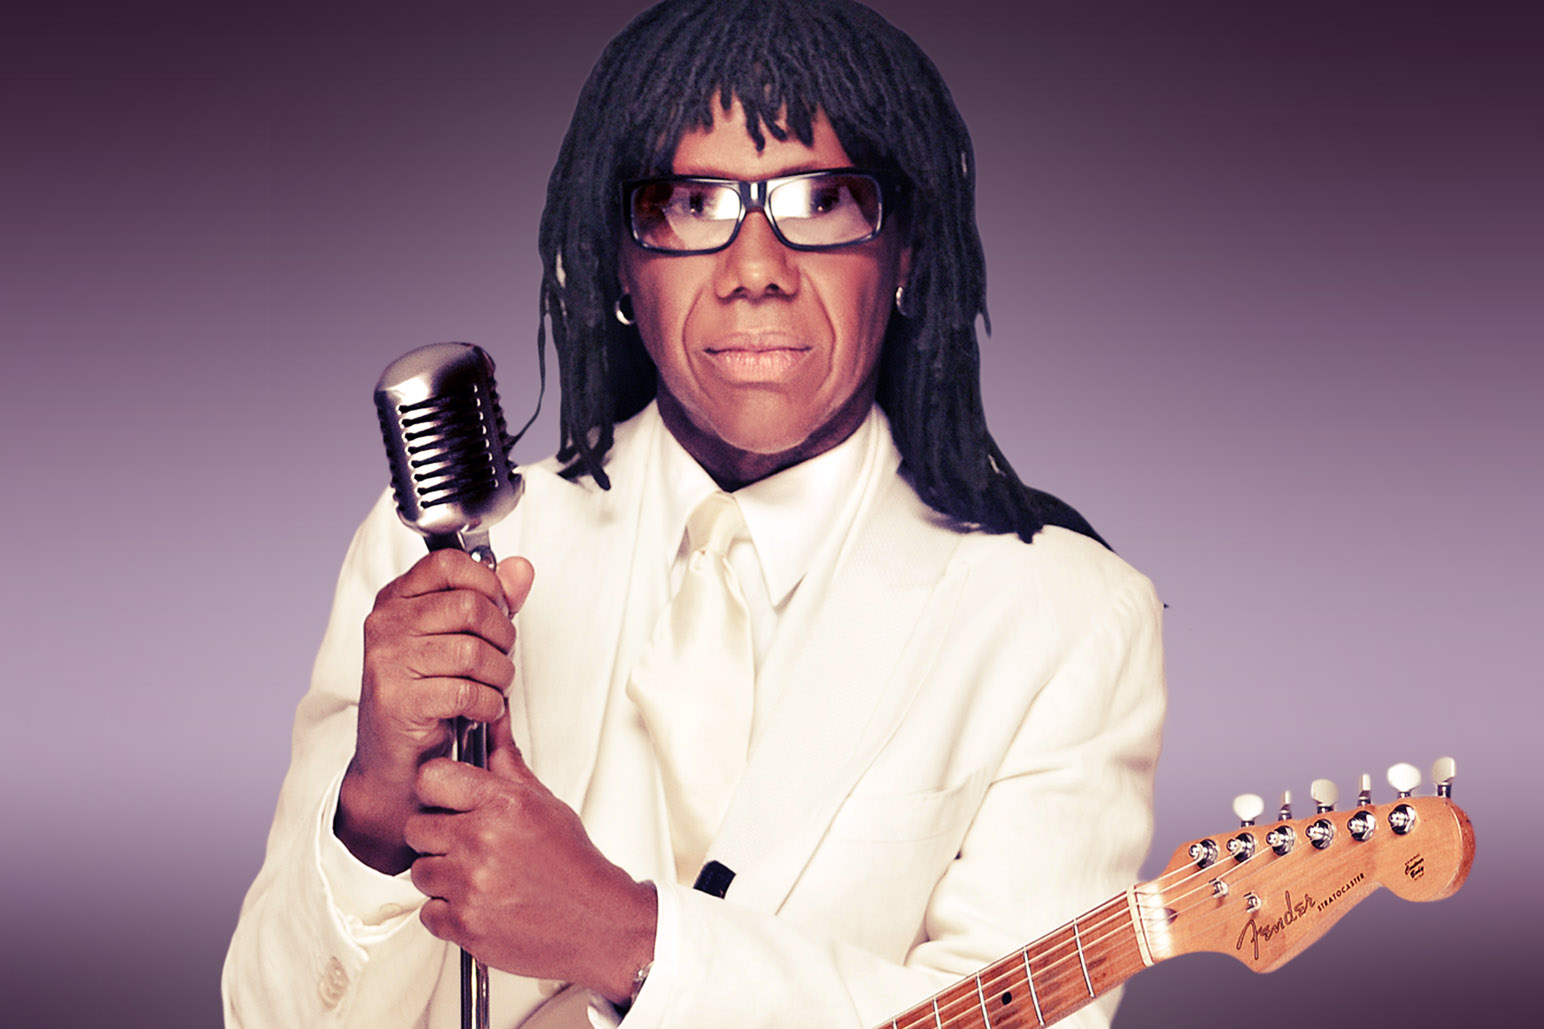 Nile Rodgers & Chic